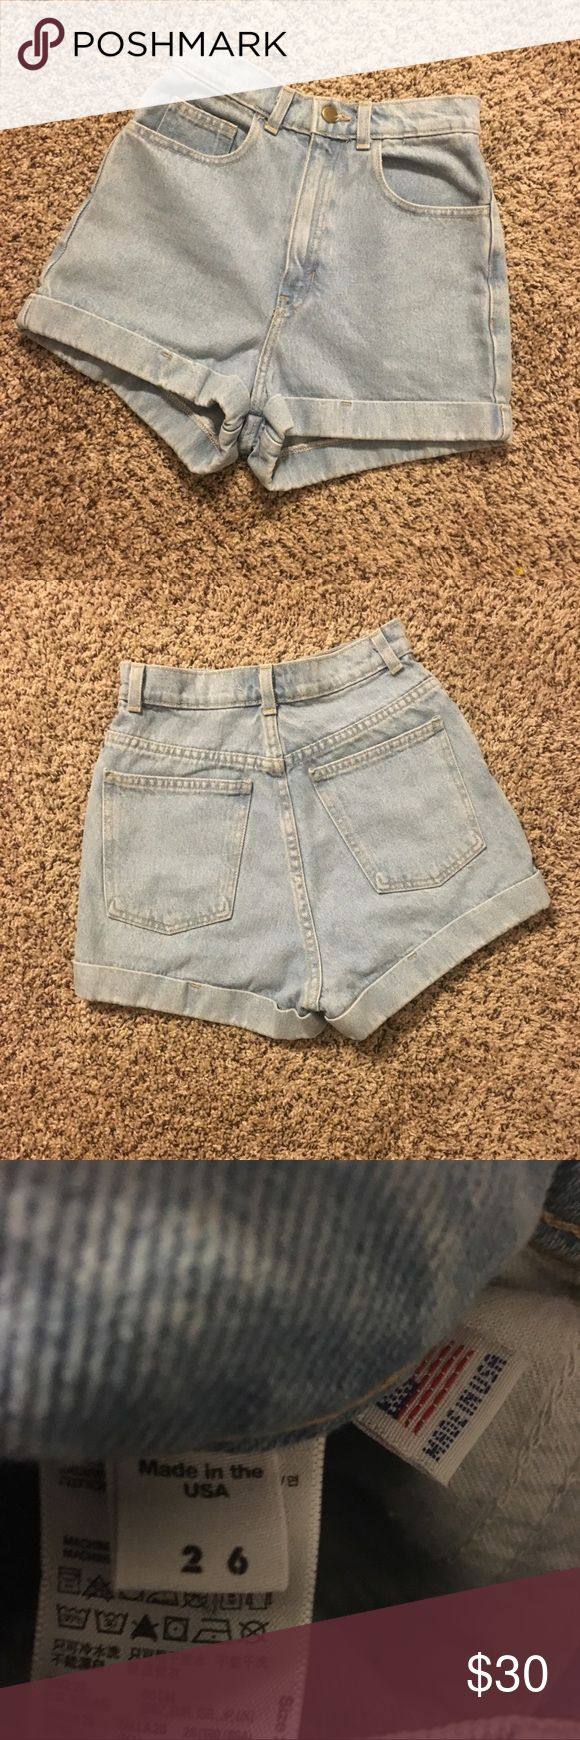 Best 25  American apparel shorts ideas on Pinterest | American ...